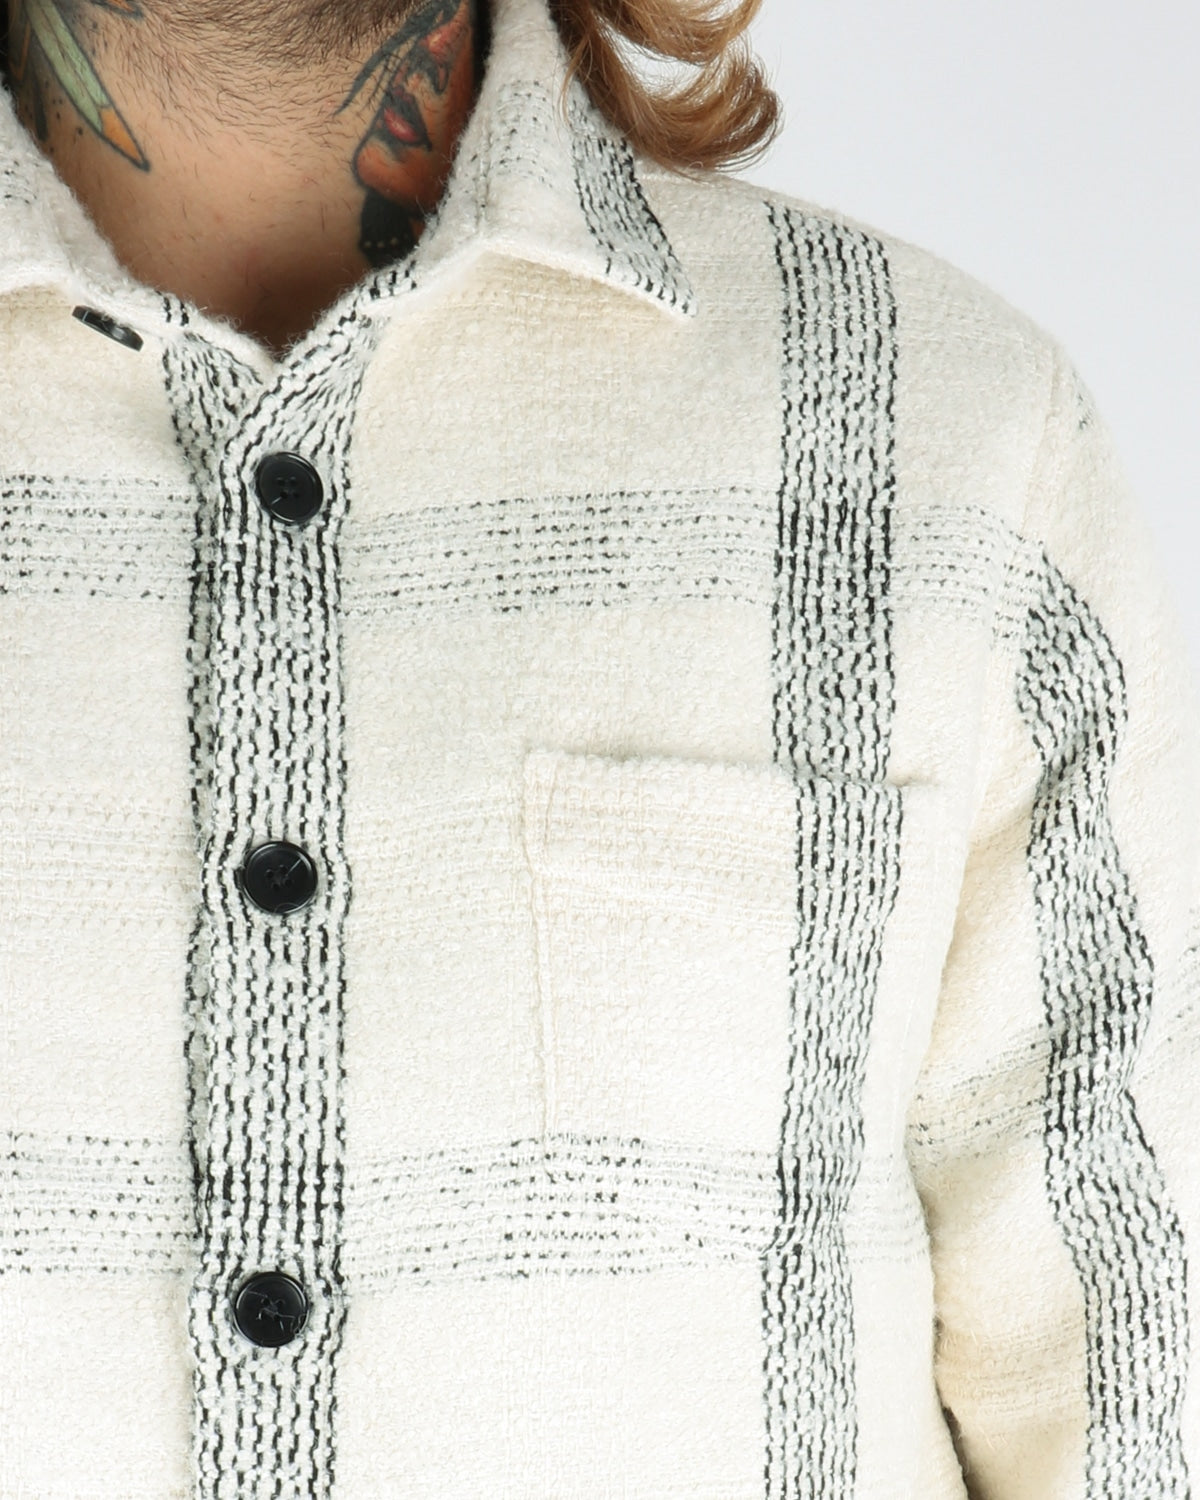 libertine libertine_miracle shirt_offwhite check_view_3_3